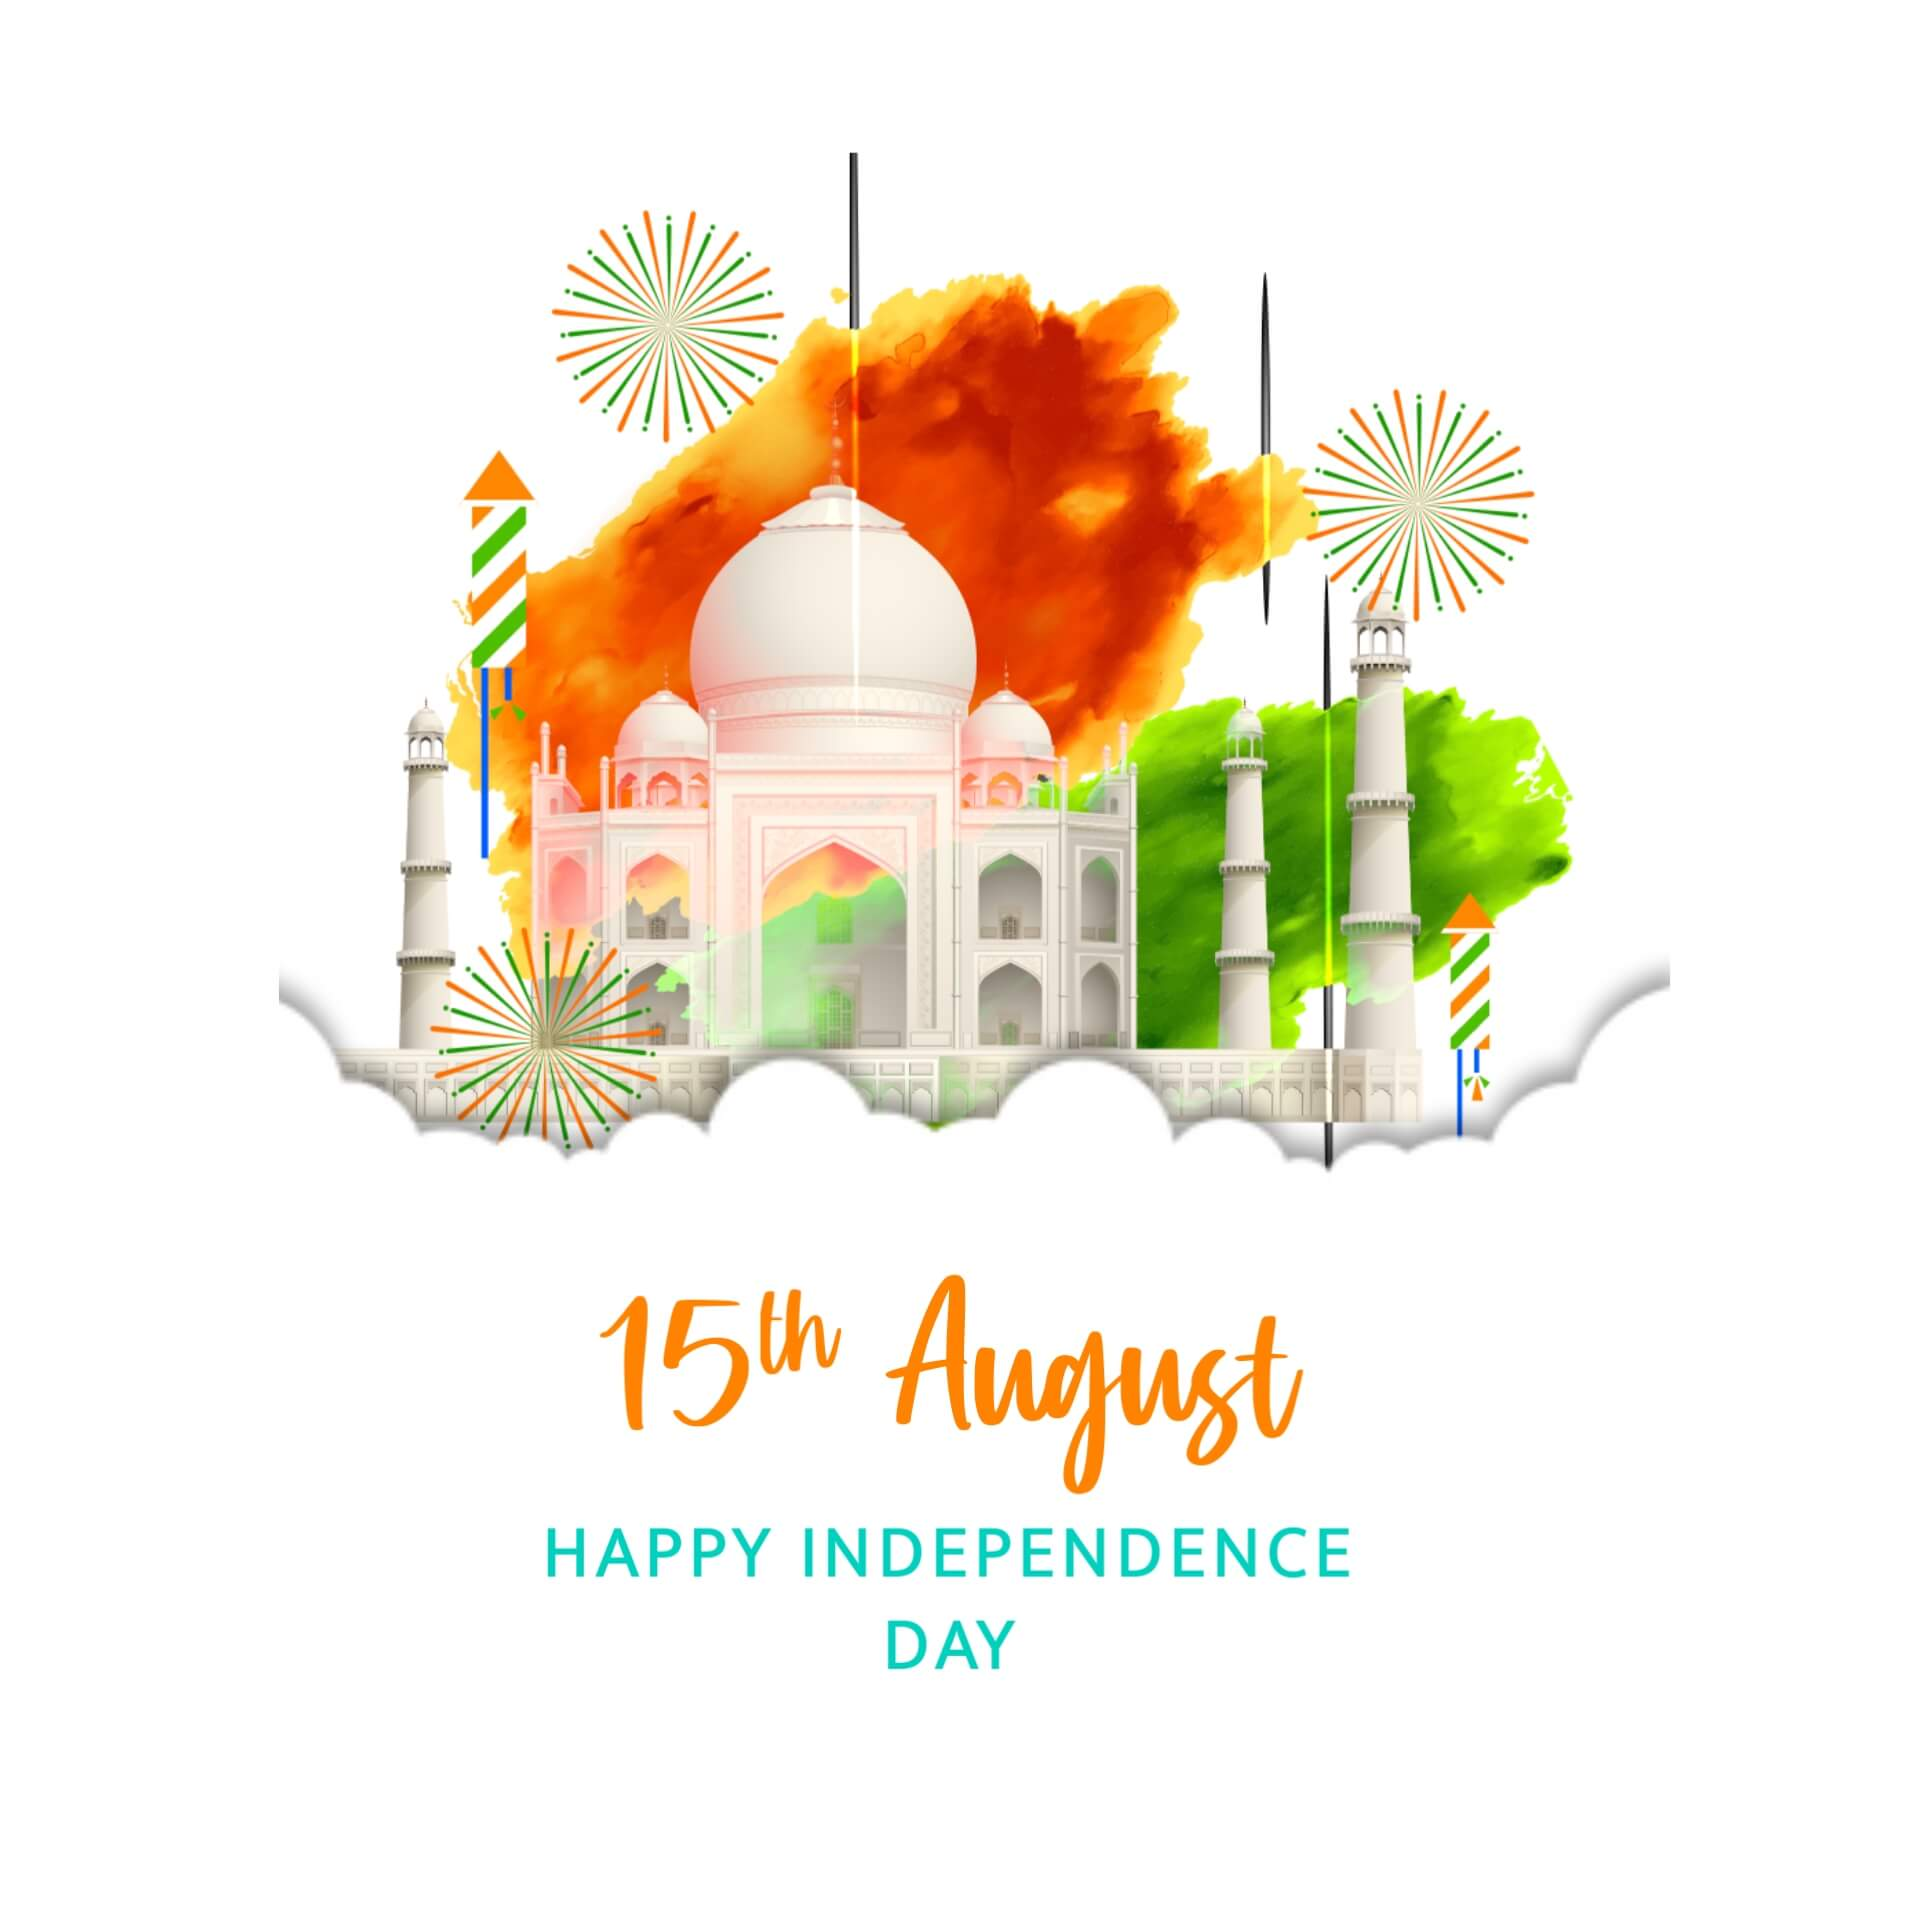 Happy 15th August Images